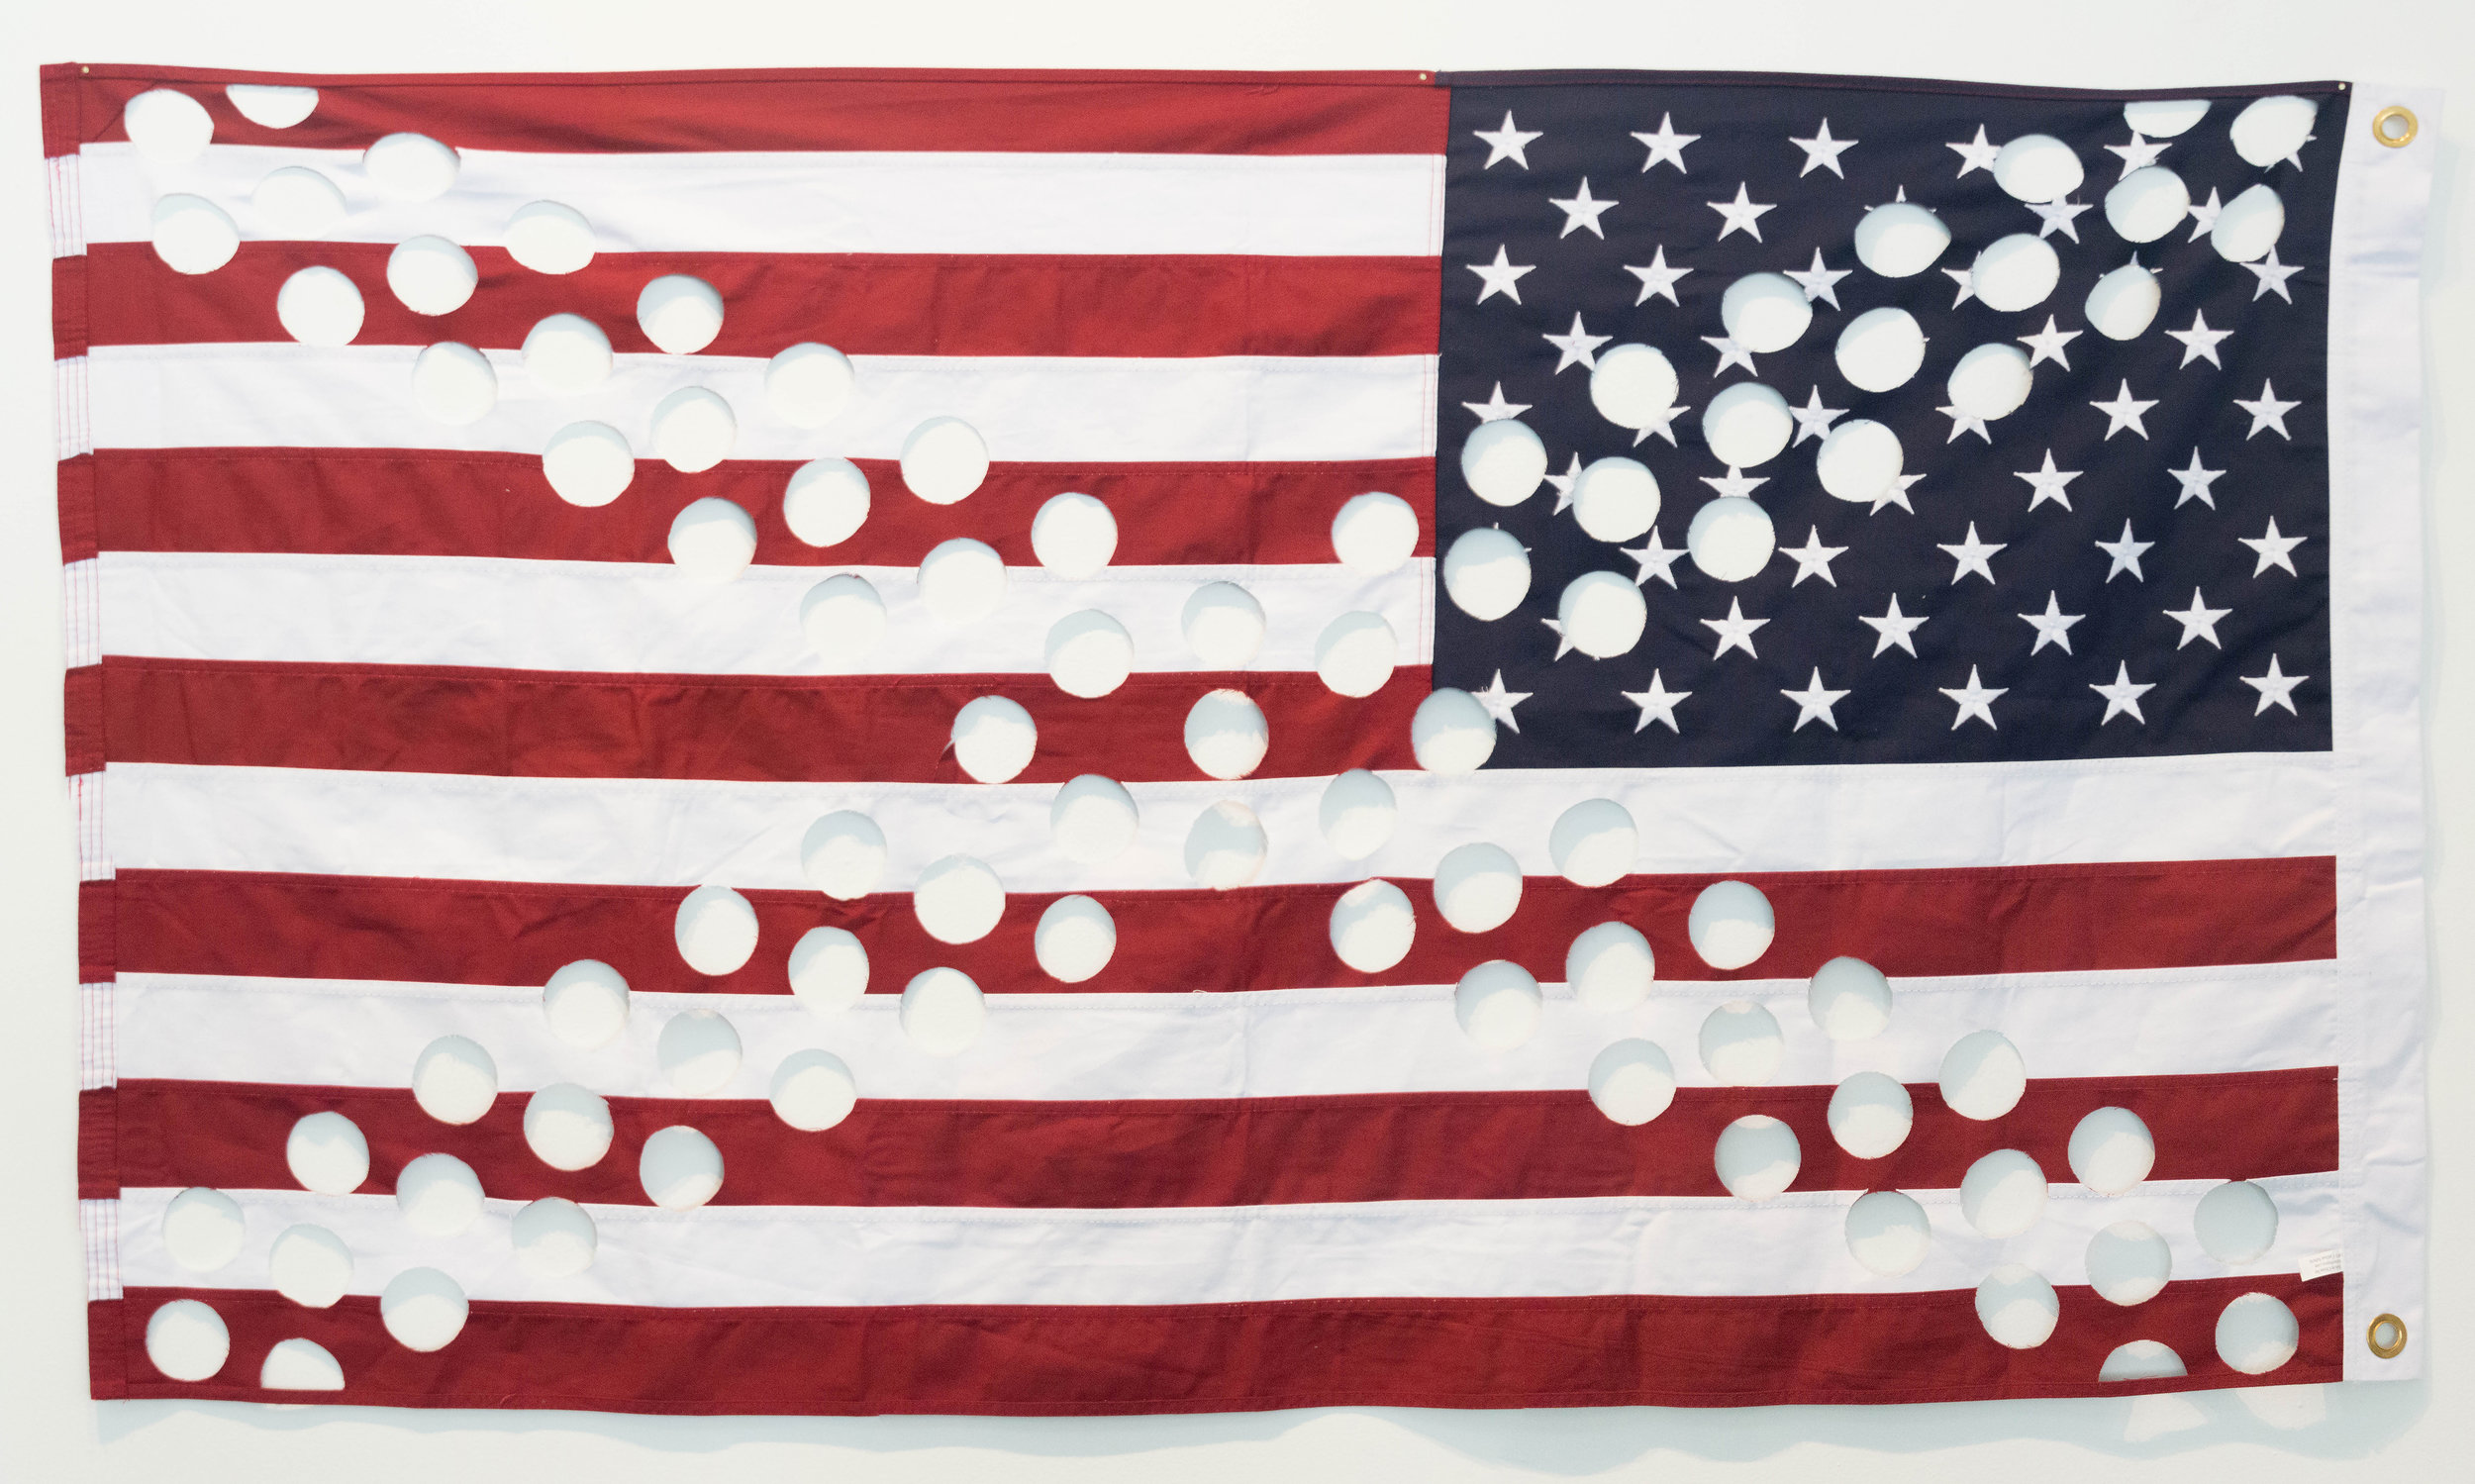 """#31 (Palpable Ignorance of the Divine Will)  United States flag 36""""x60"""" 2018  Photo Courtesy: Anna C. Robertson"""